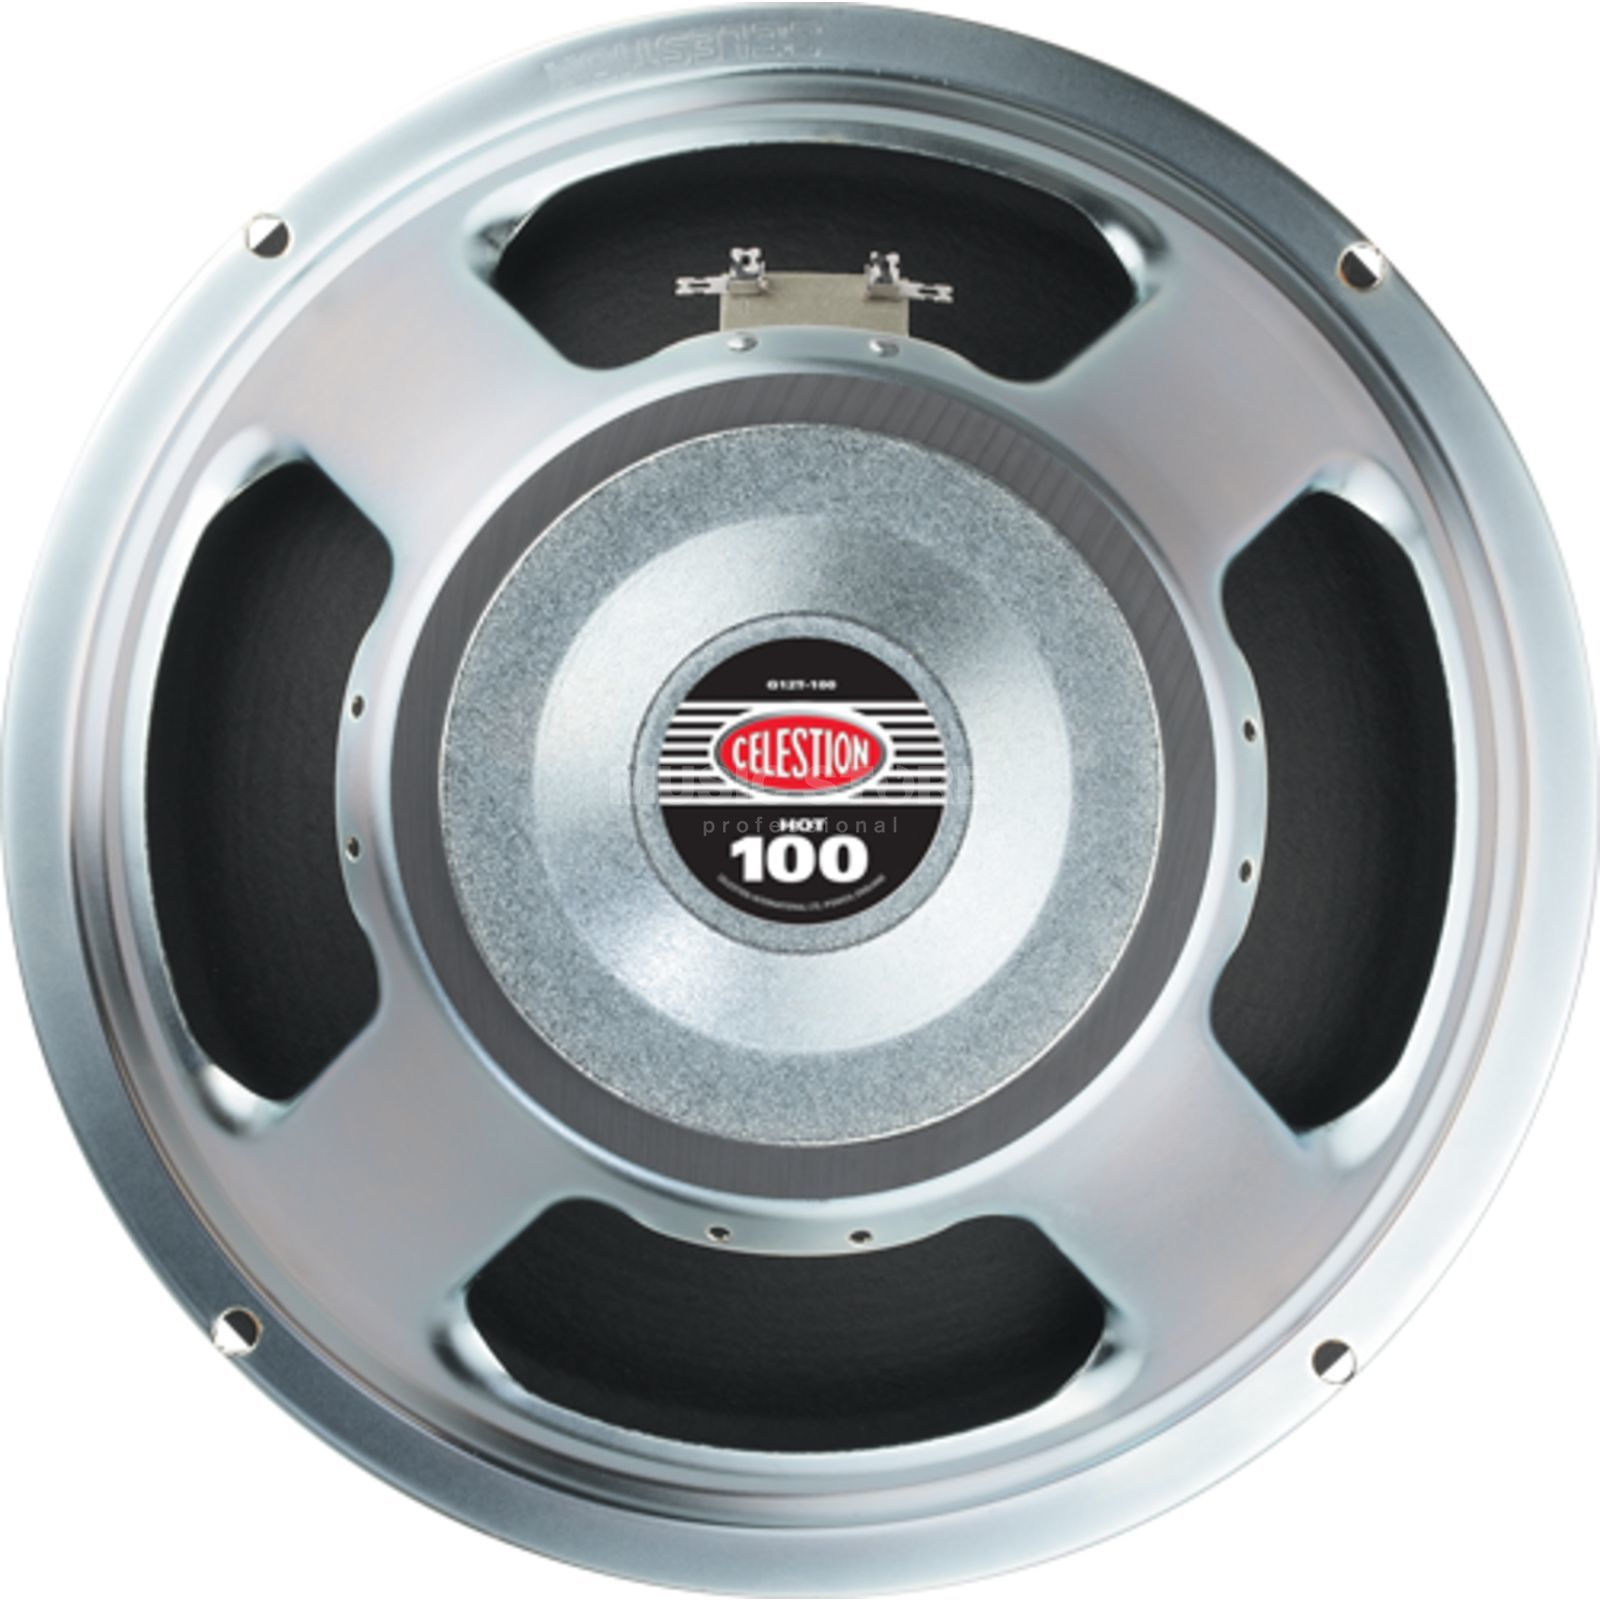 "Celestion G12T ""Hot 100"" 12"" Speaker 4 Ohm Produktbild"